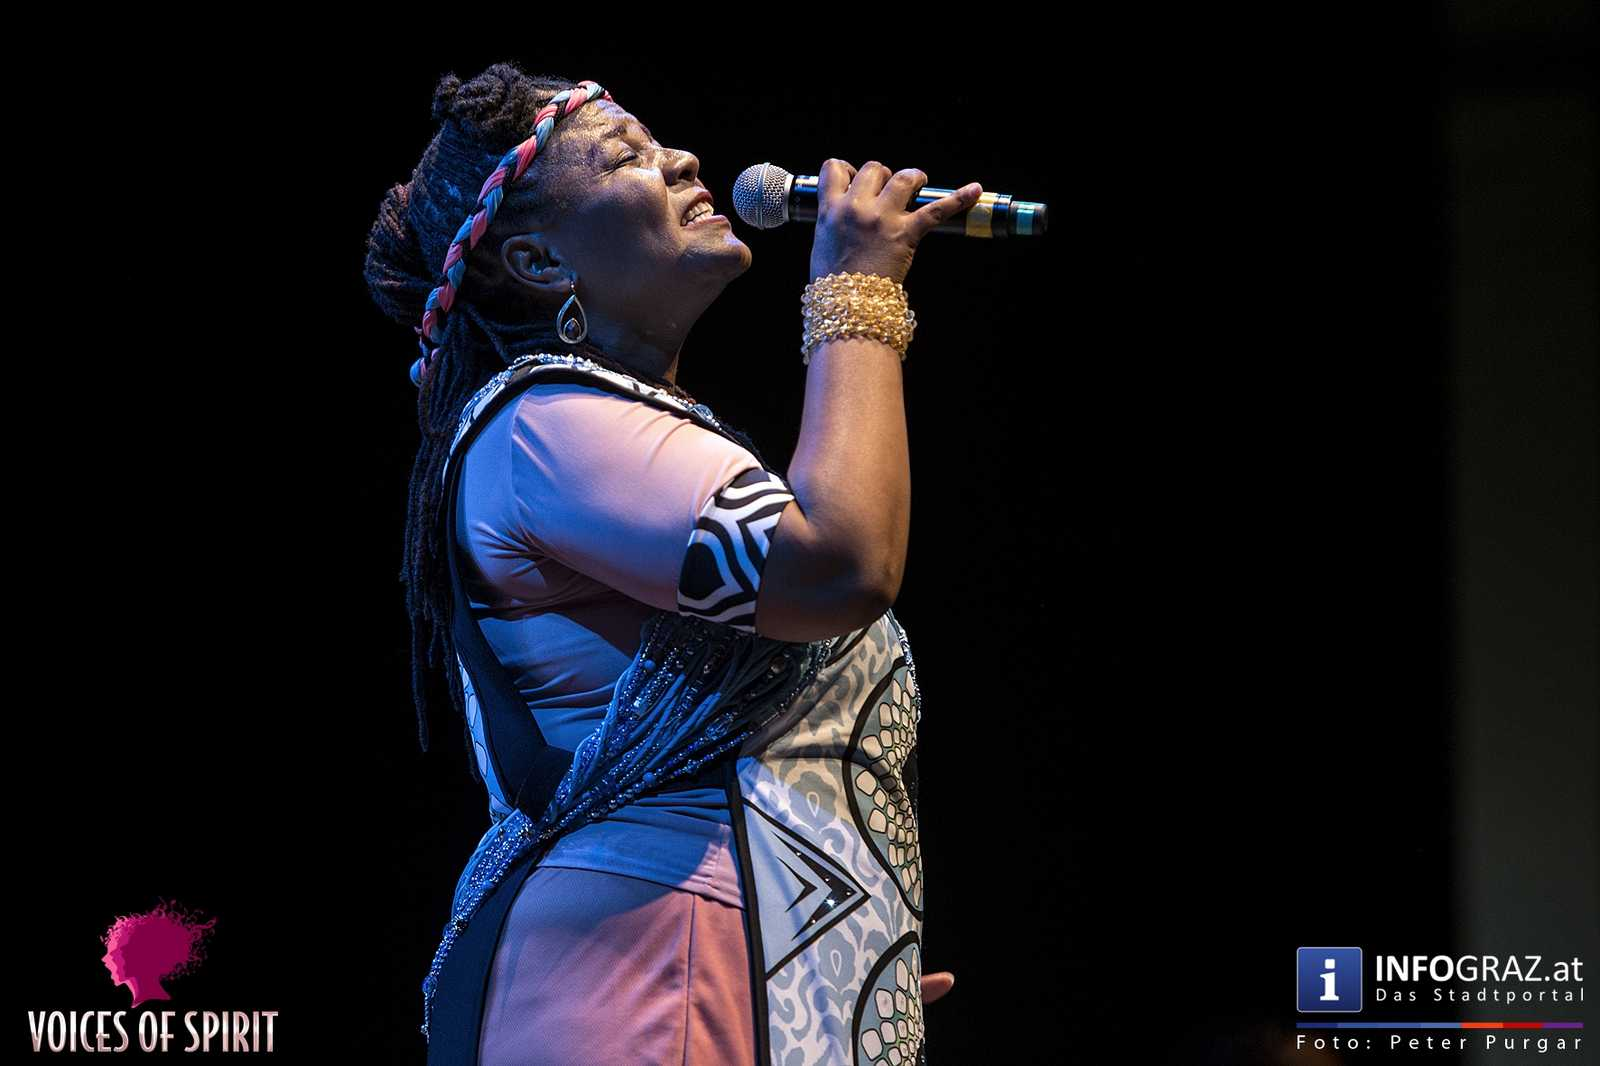 soweto gospel choir internationales chorfestival statdthalle graz voices of spirit eroeffnung festivals 2016 127